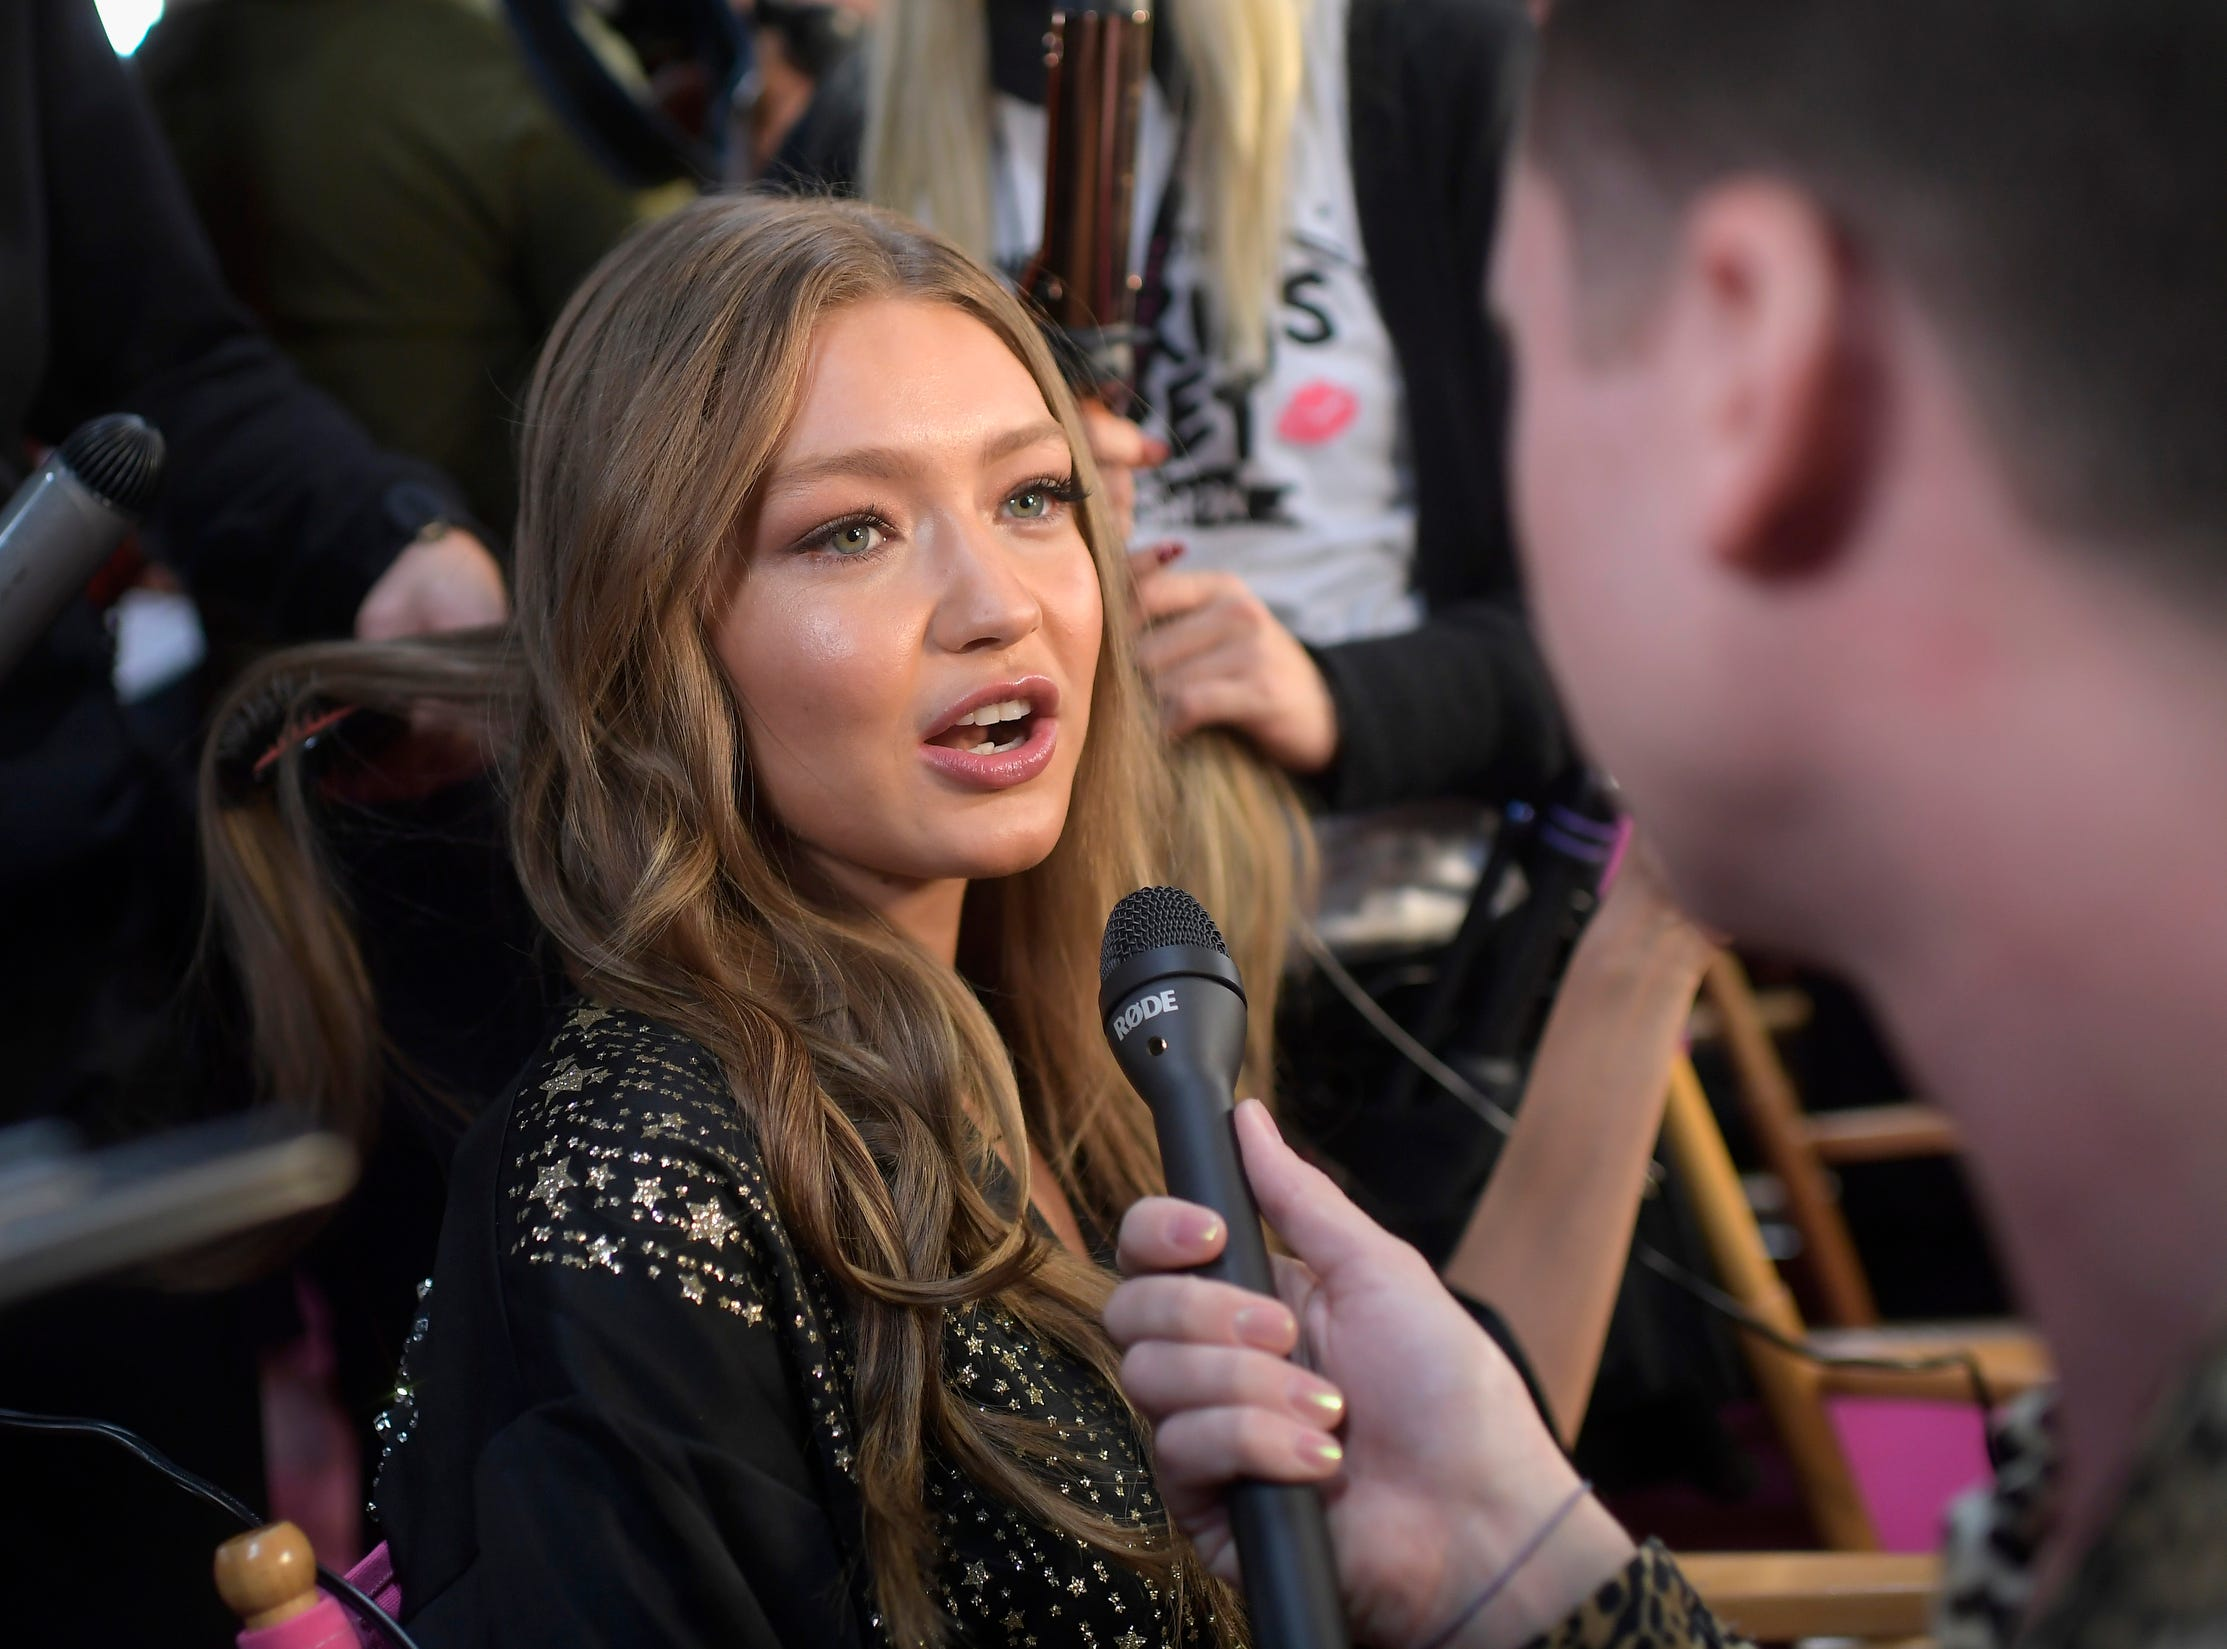 Gigi Hadid takes media questions backstage.